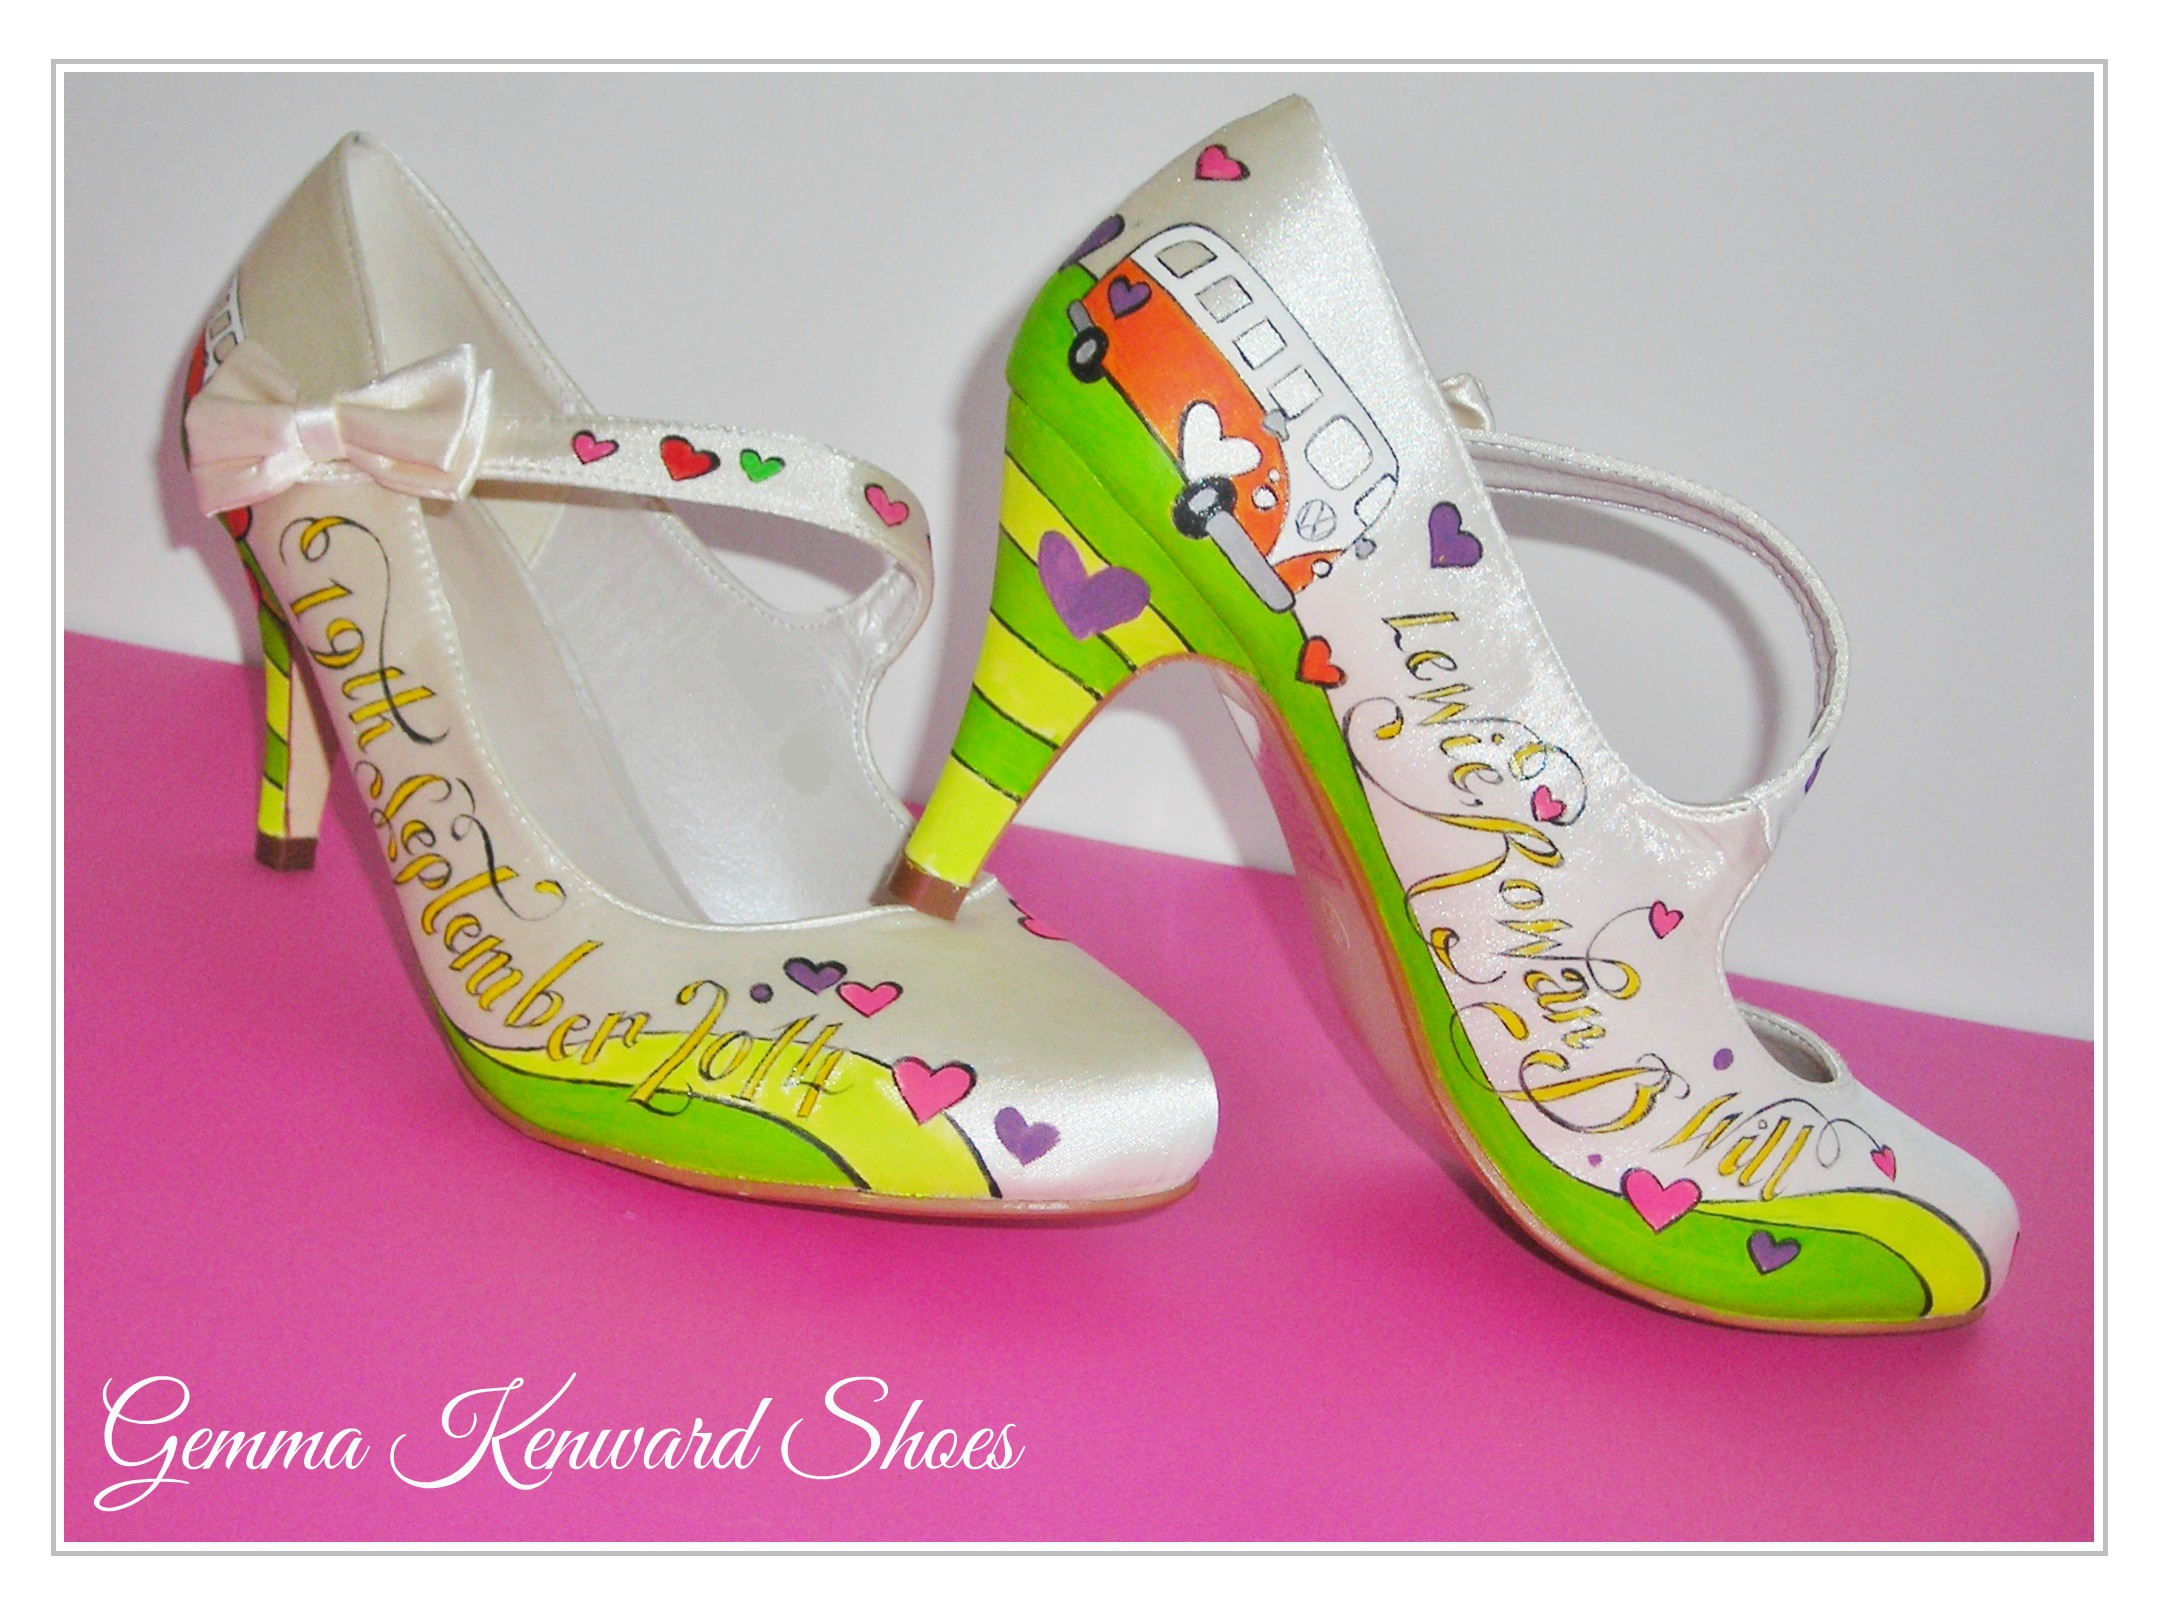 Wedding shoes hand painted with orange campervans and hearts on lime green grass